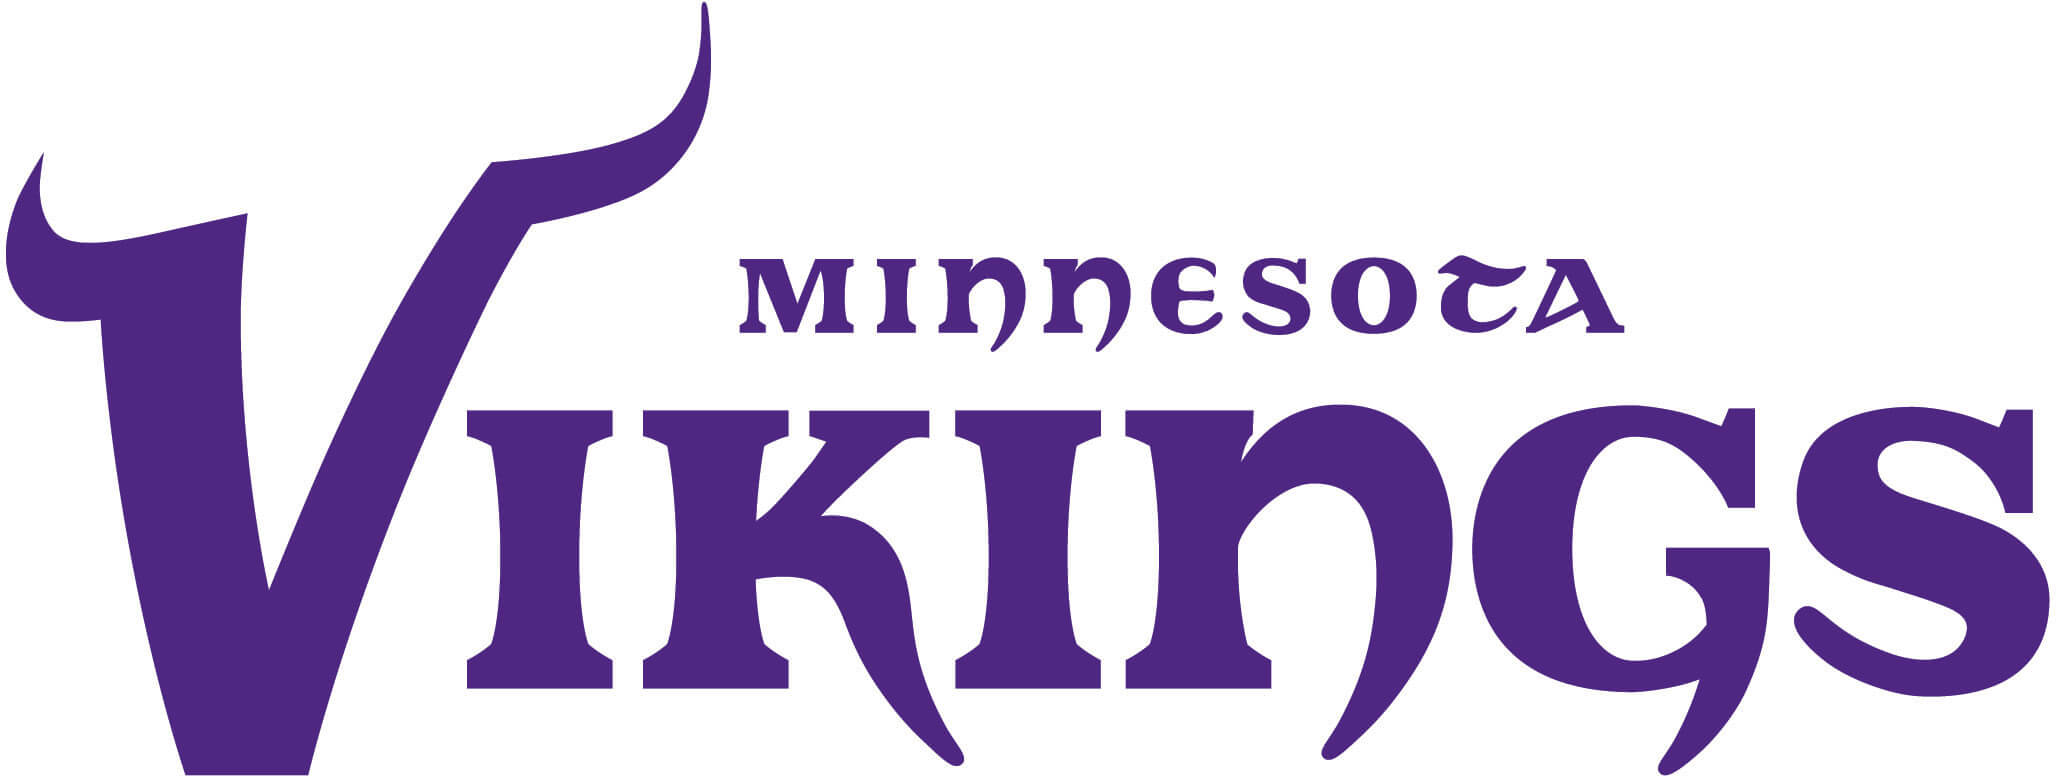 trusted dentist for the minnesota vikings